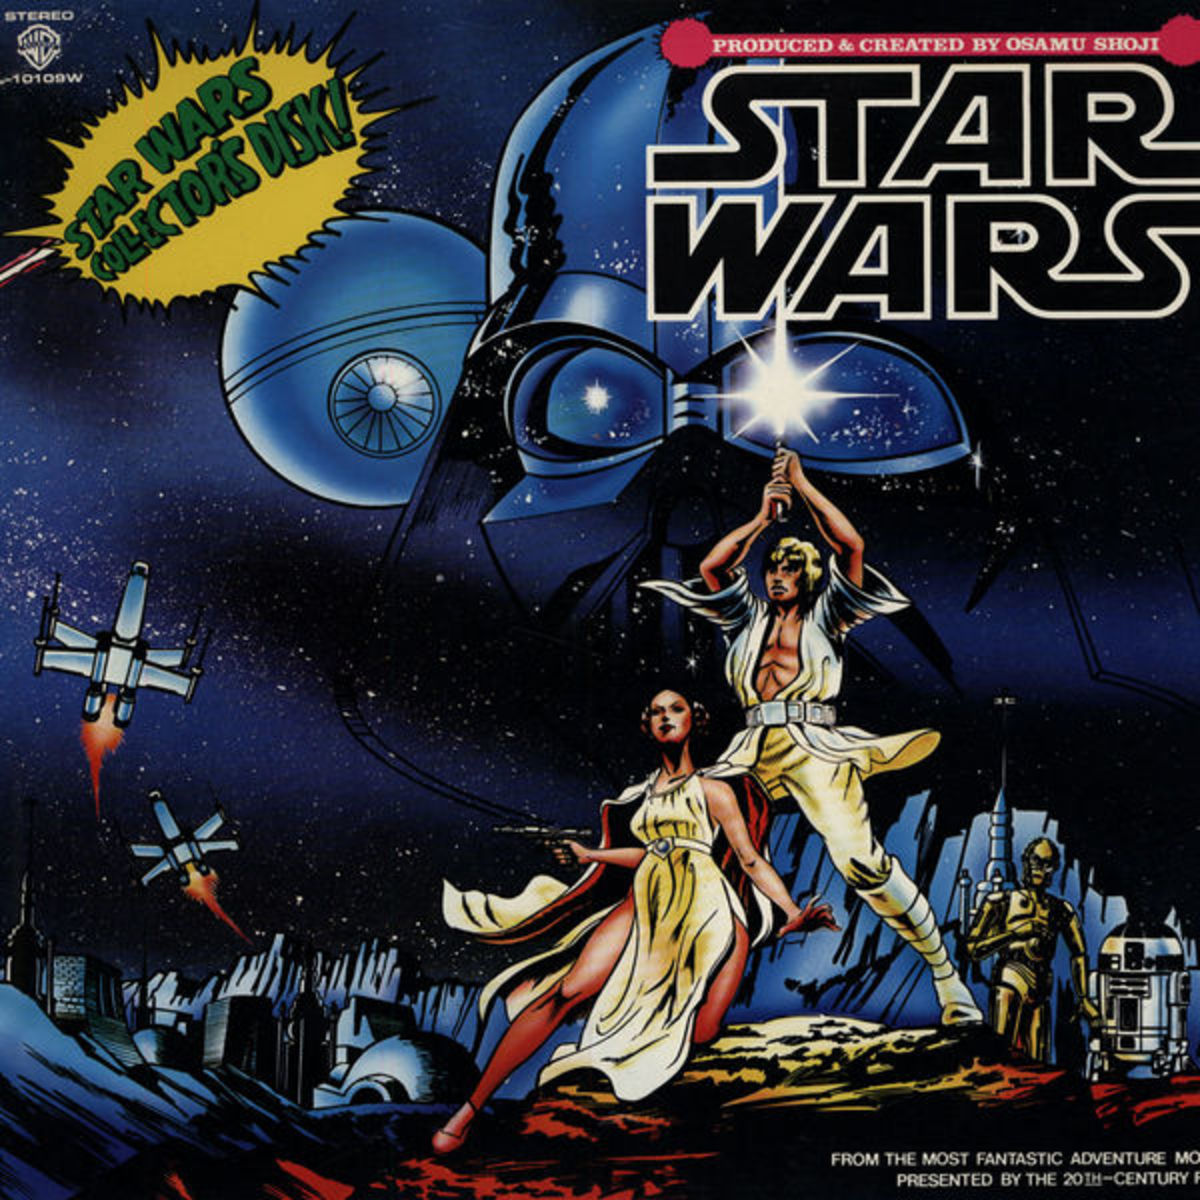 Star Wars Amp The Vinyl Record Hubpages